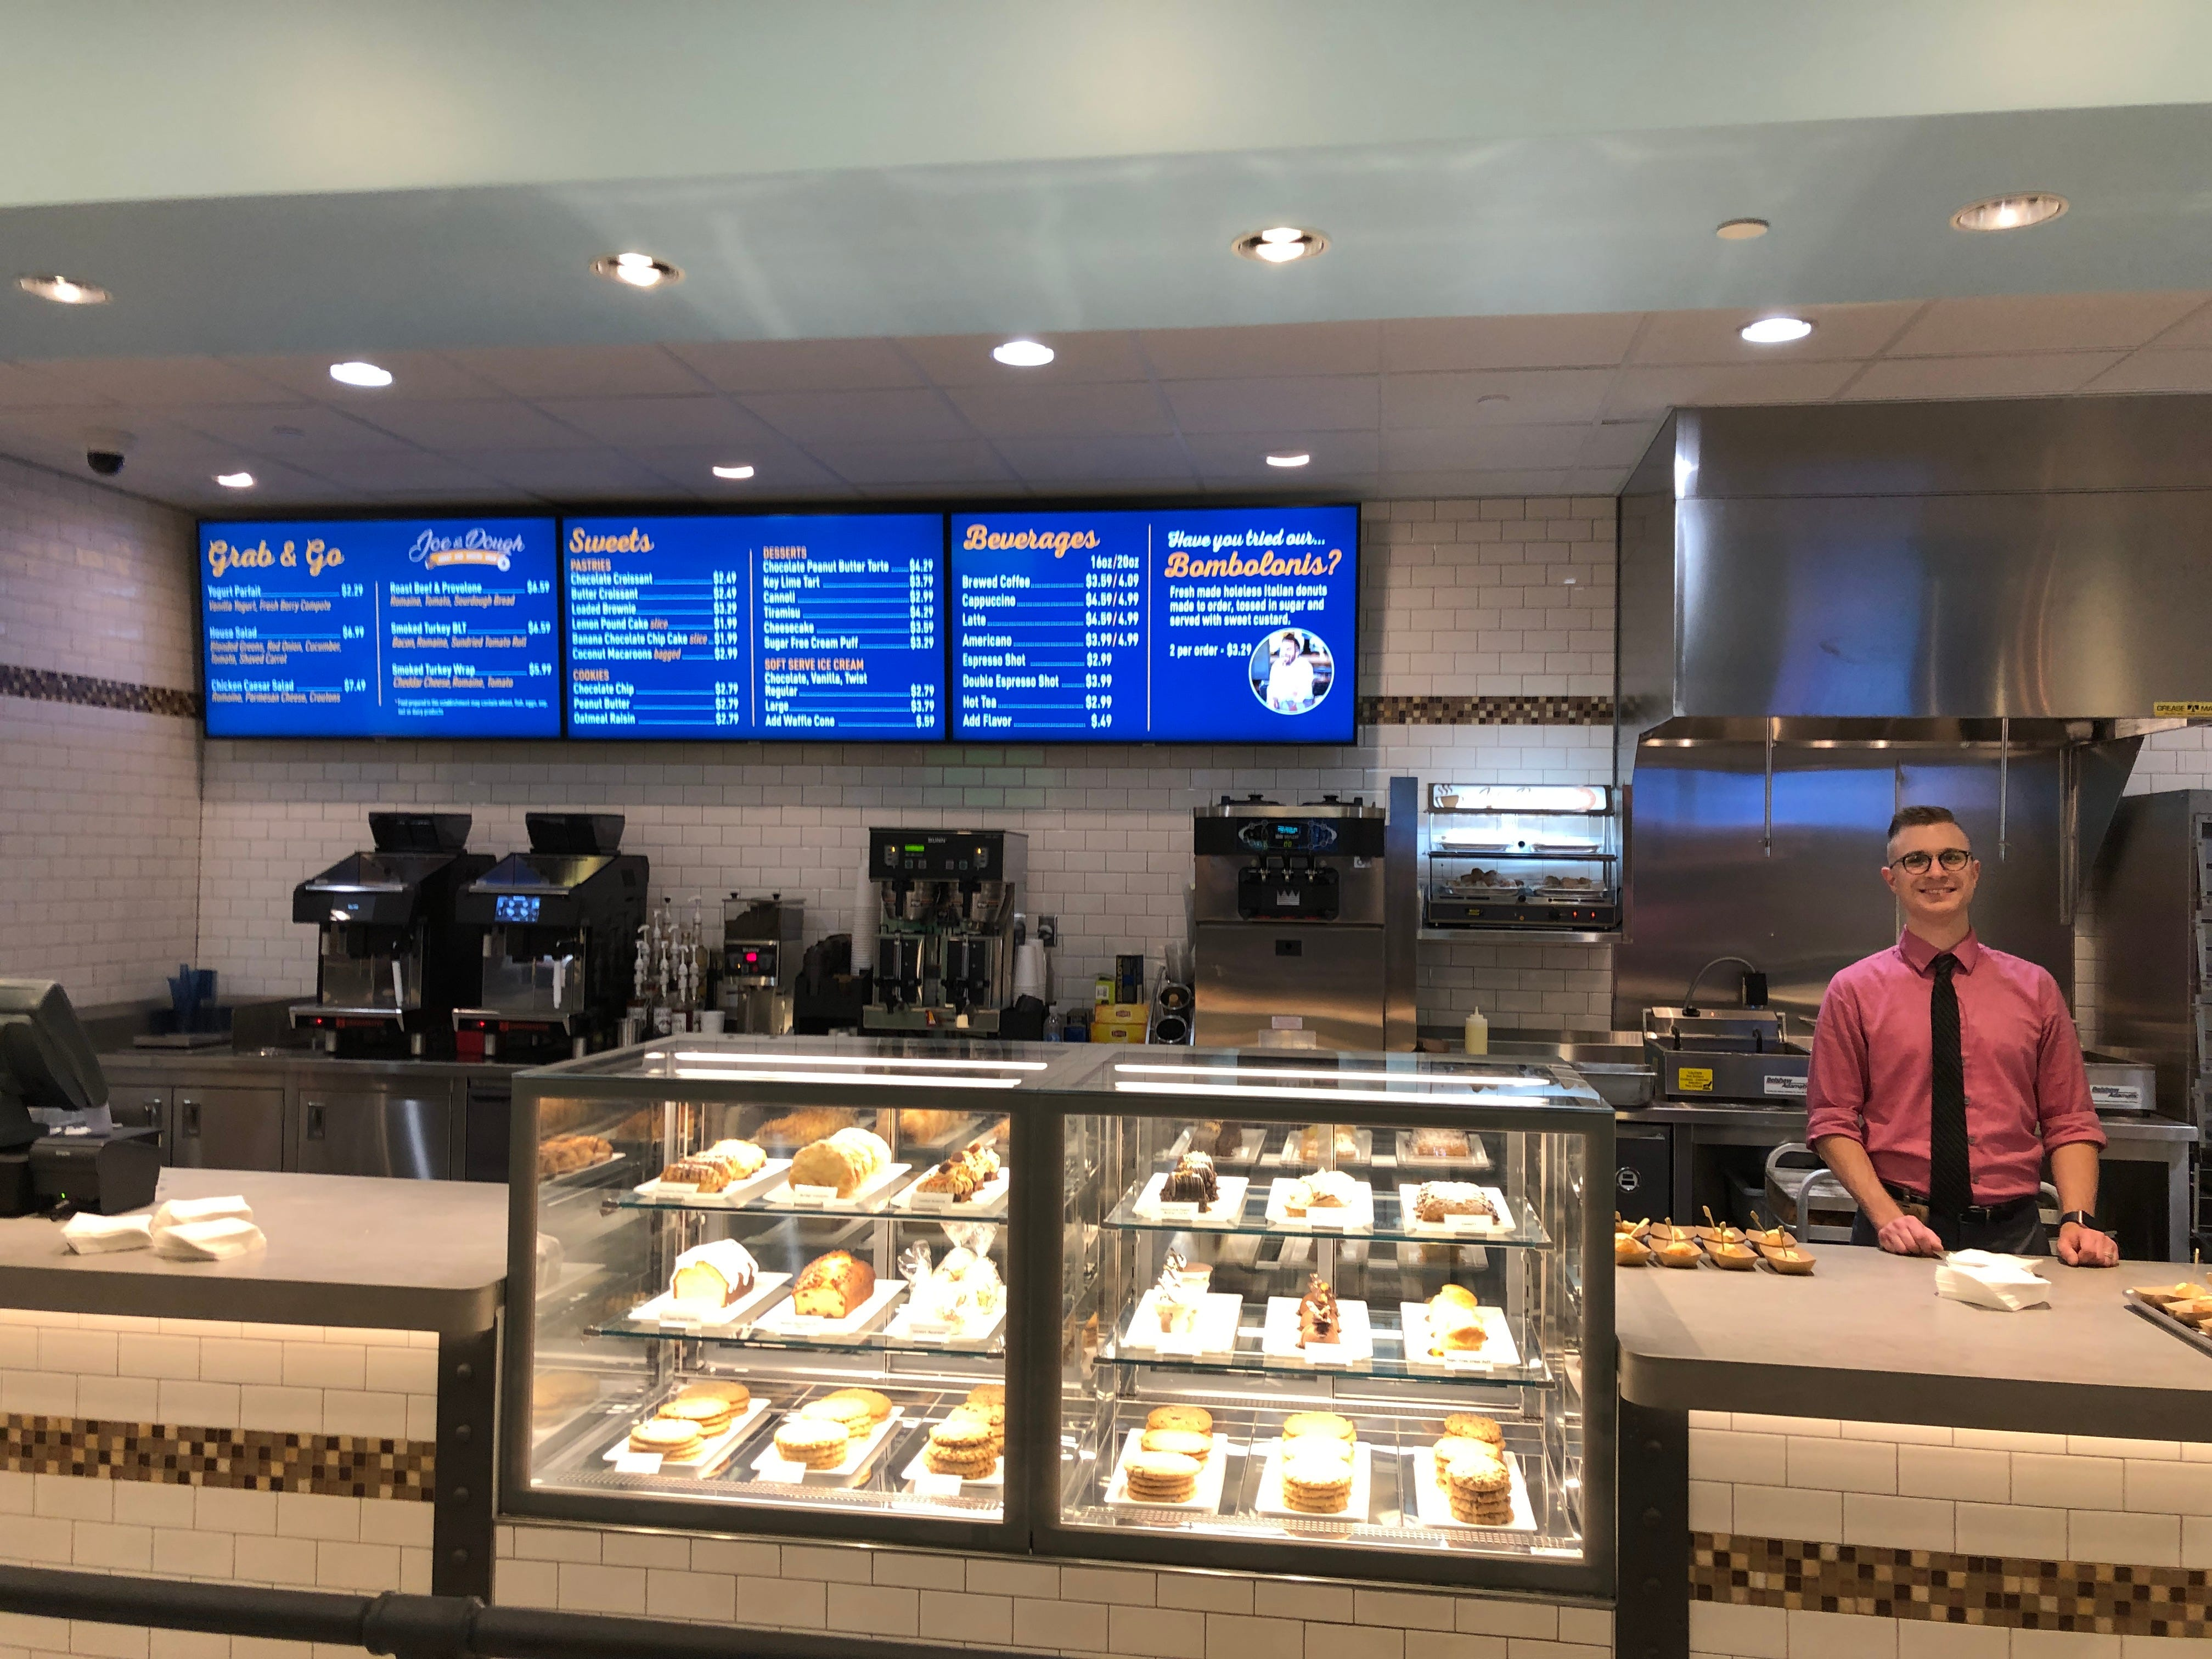 The counter at Joe & Dough, a spot in The Eatery where you can satisfy your sweet tooth.